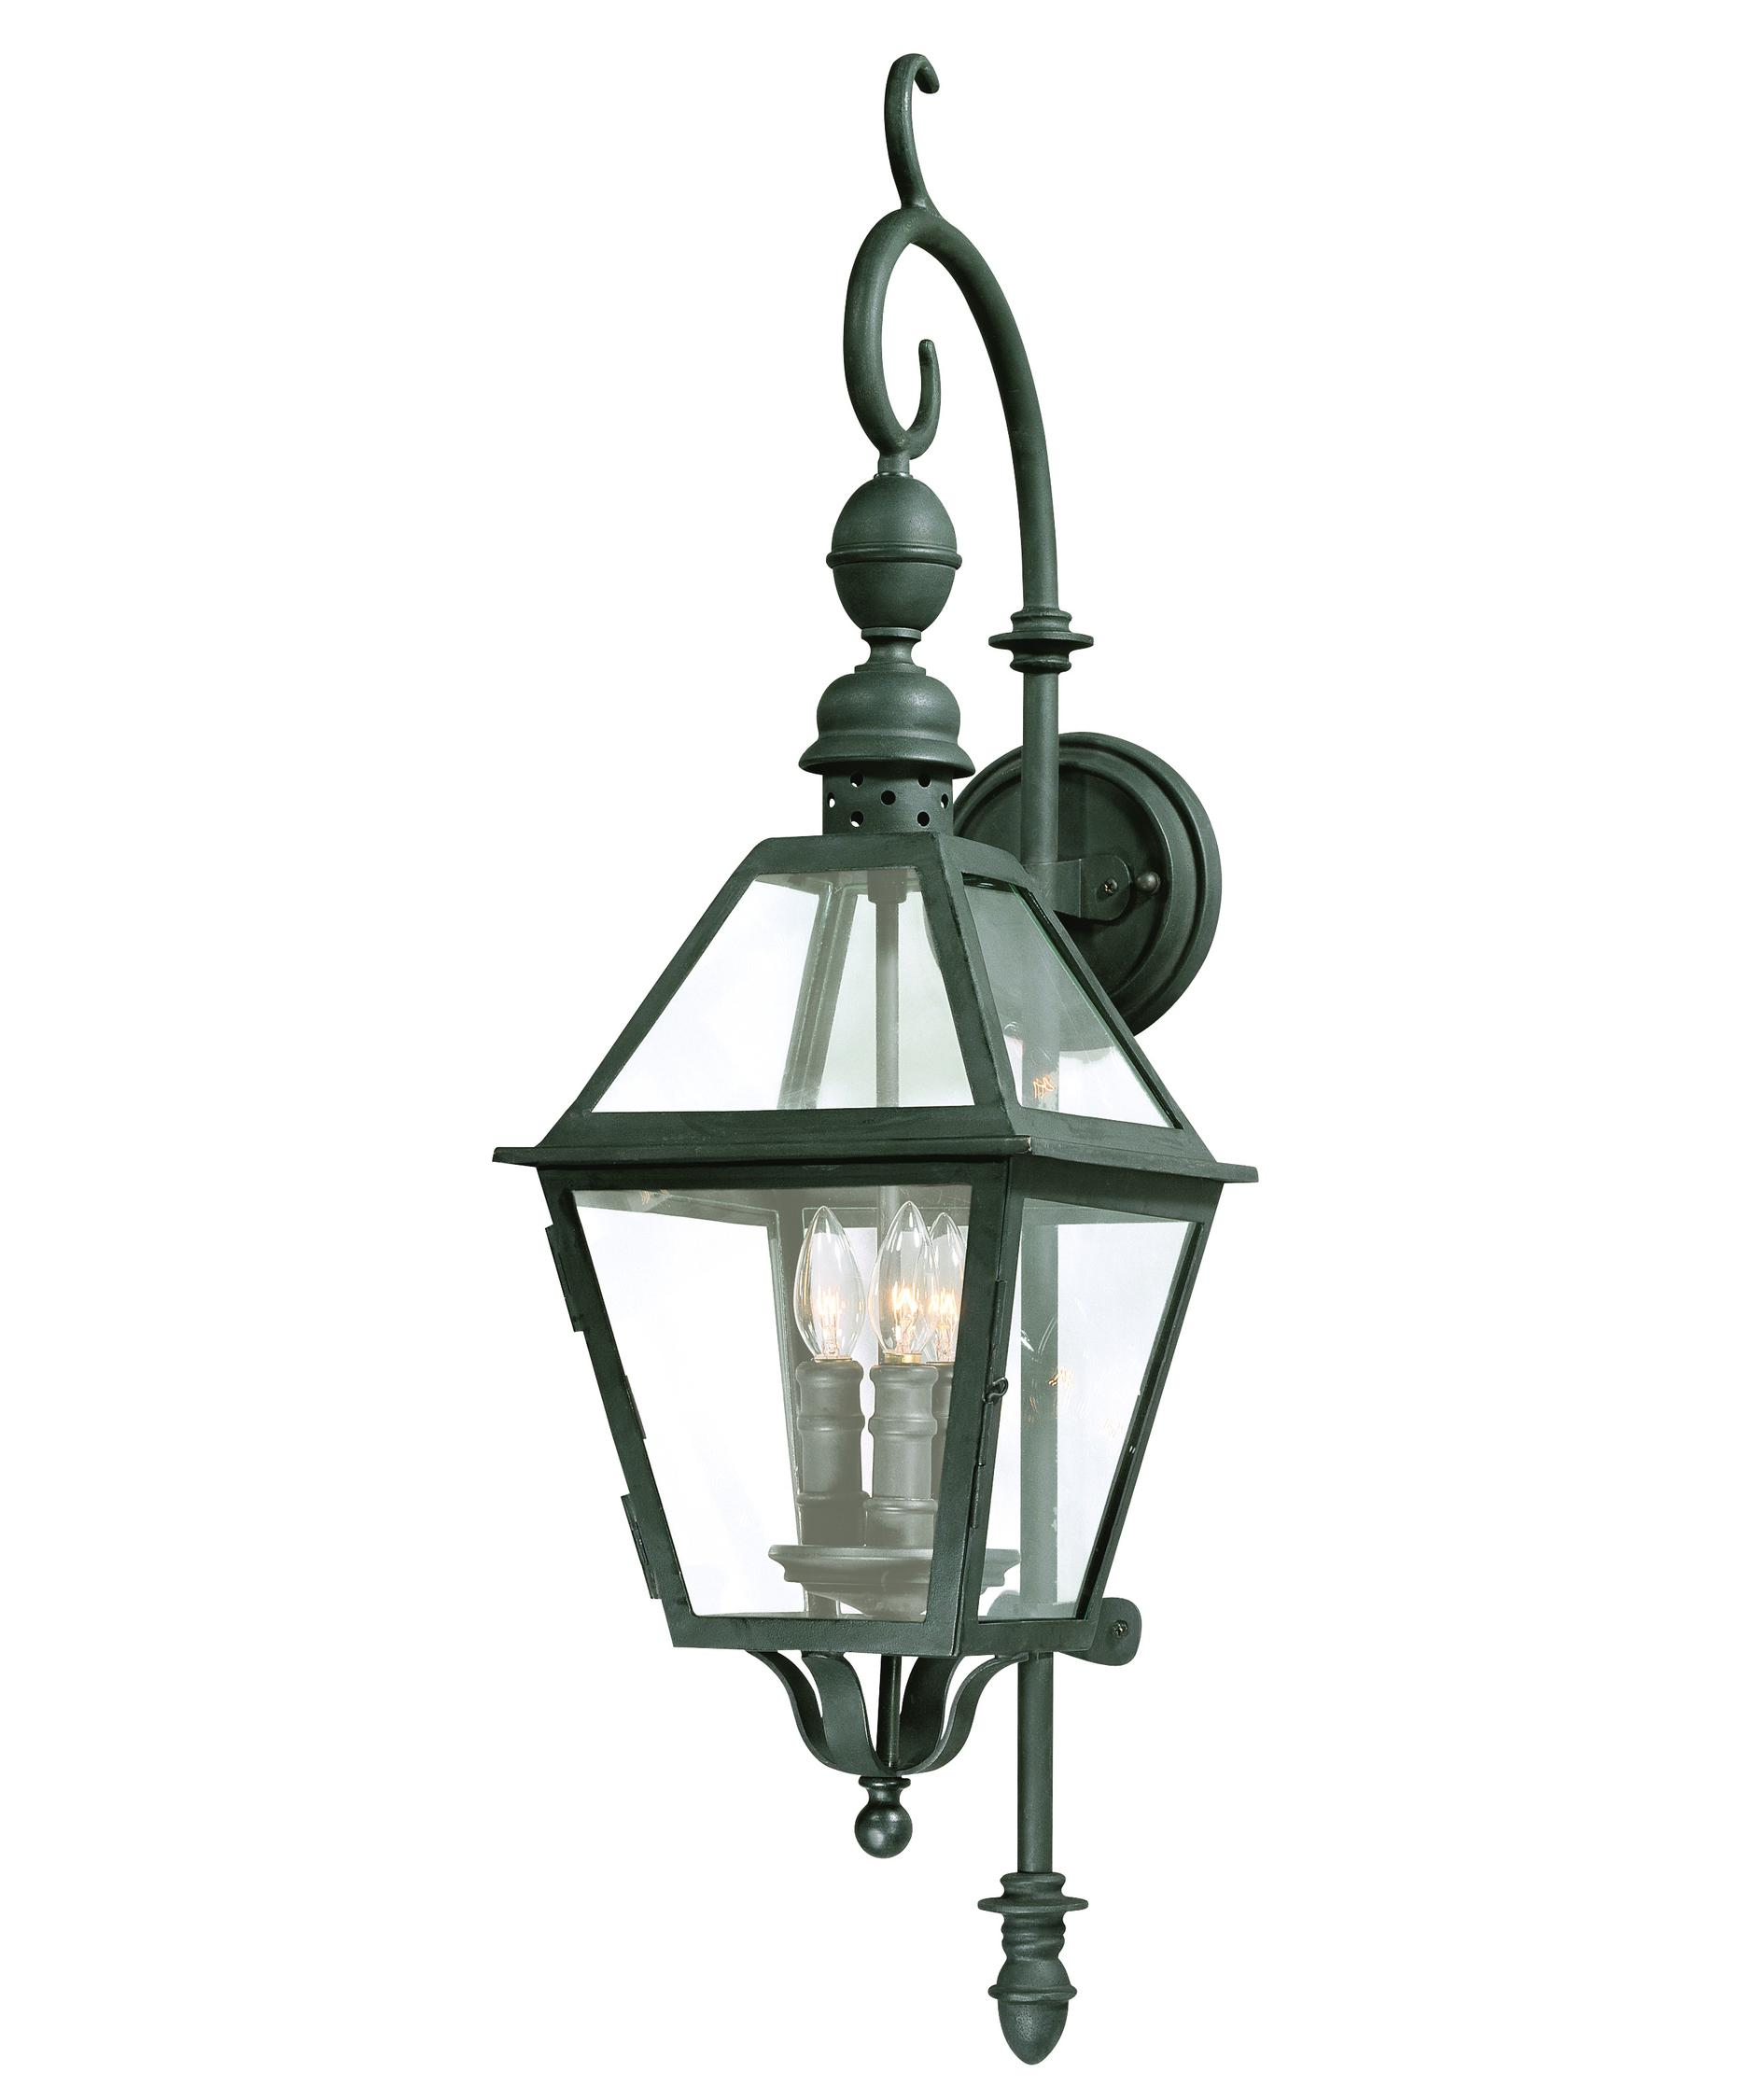 Troy Lighting B9621 Townsend 9 Inch Wide 3 Light Outdoor Wall ...